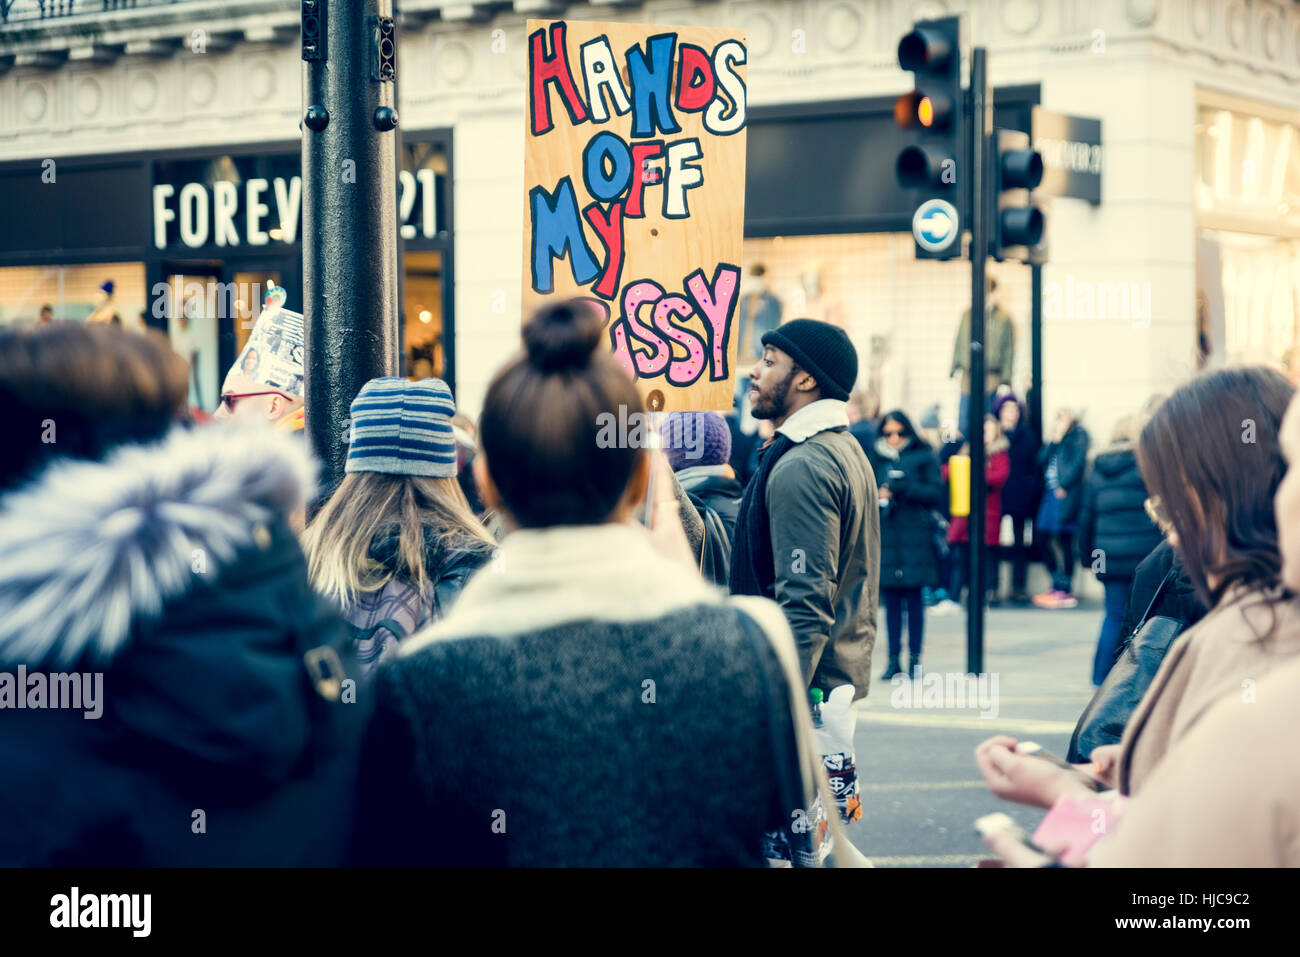 21st of january 2017, march of women at oxford street, London, UK Stock Photo